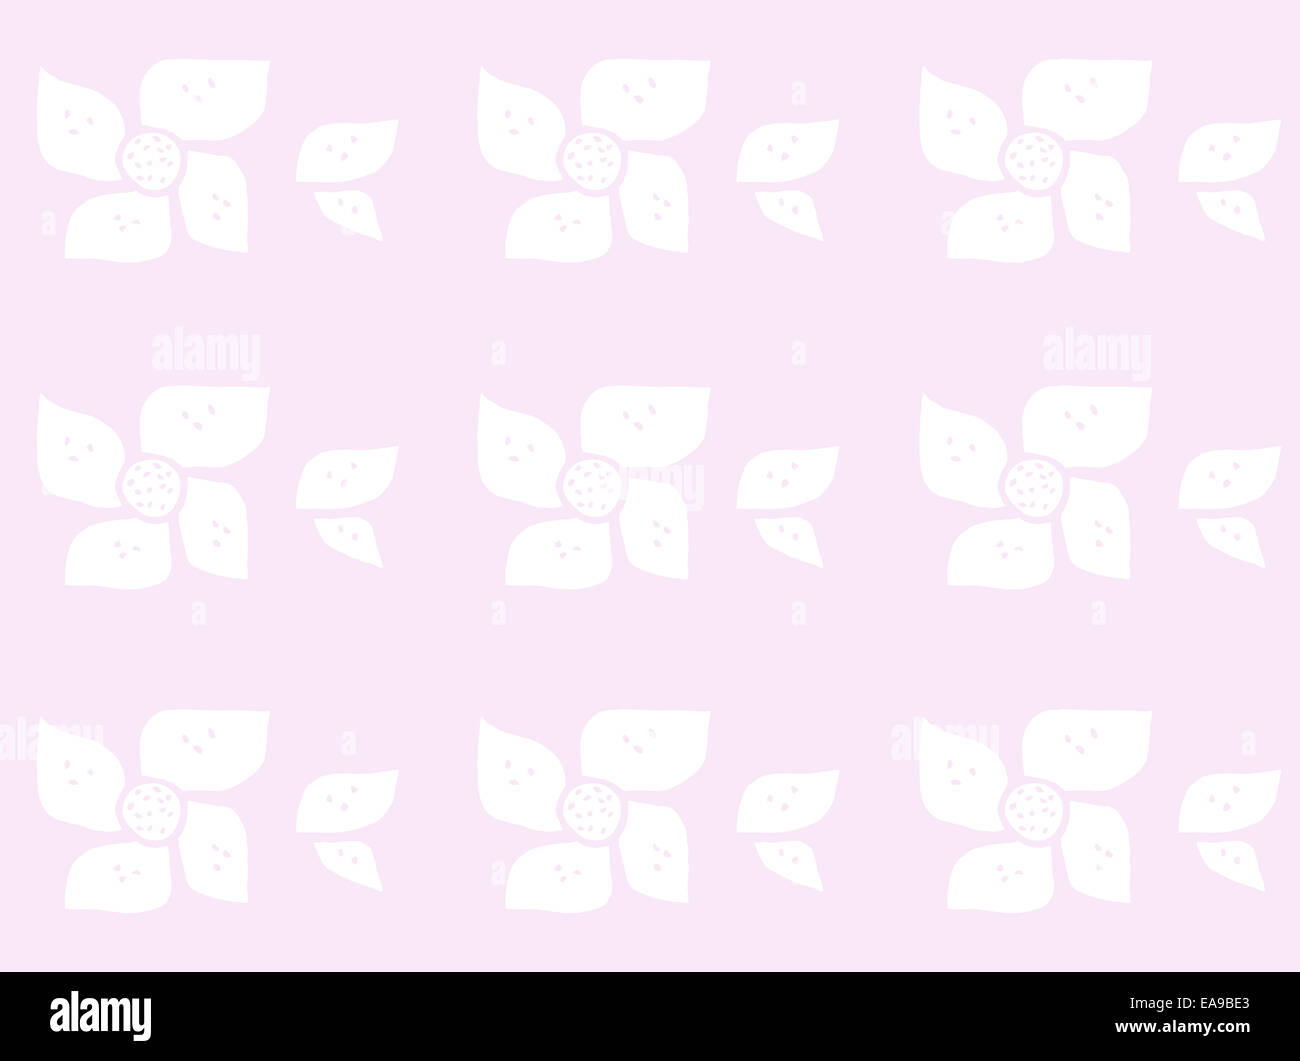 Baby flowers pink. Abstract hand drawn flower pattern in baby colors baby blue, baby pink, baby yellow. Stock Photo